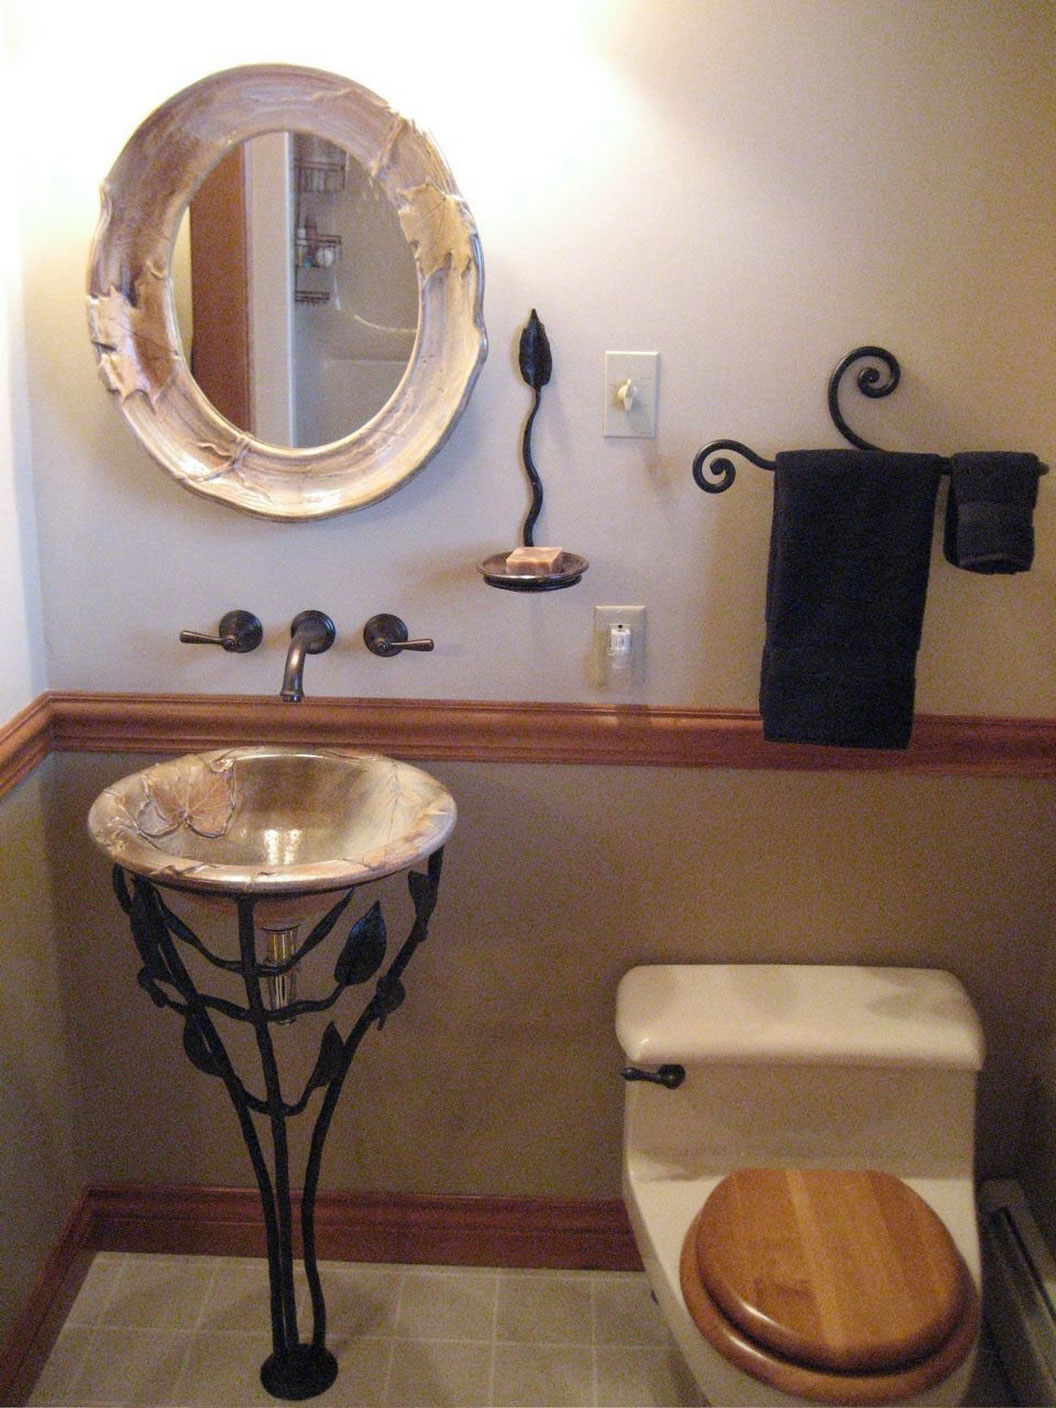 Wonderful vessel sink with black stained metal holder a round mirror with  beautiful frame a toilet. Small Vessel Sinks for Bathrooms   HomesFeed